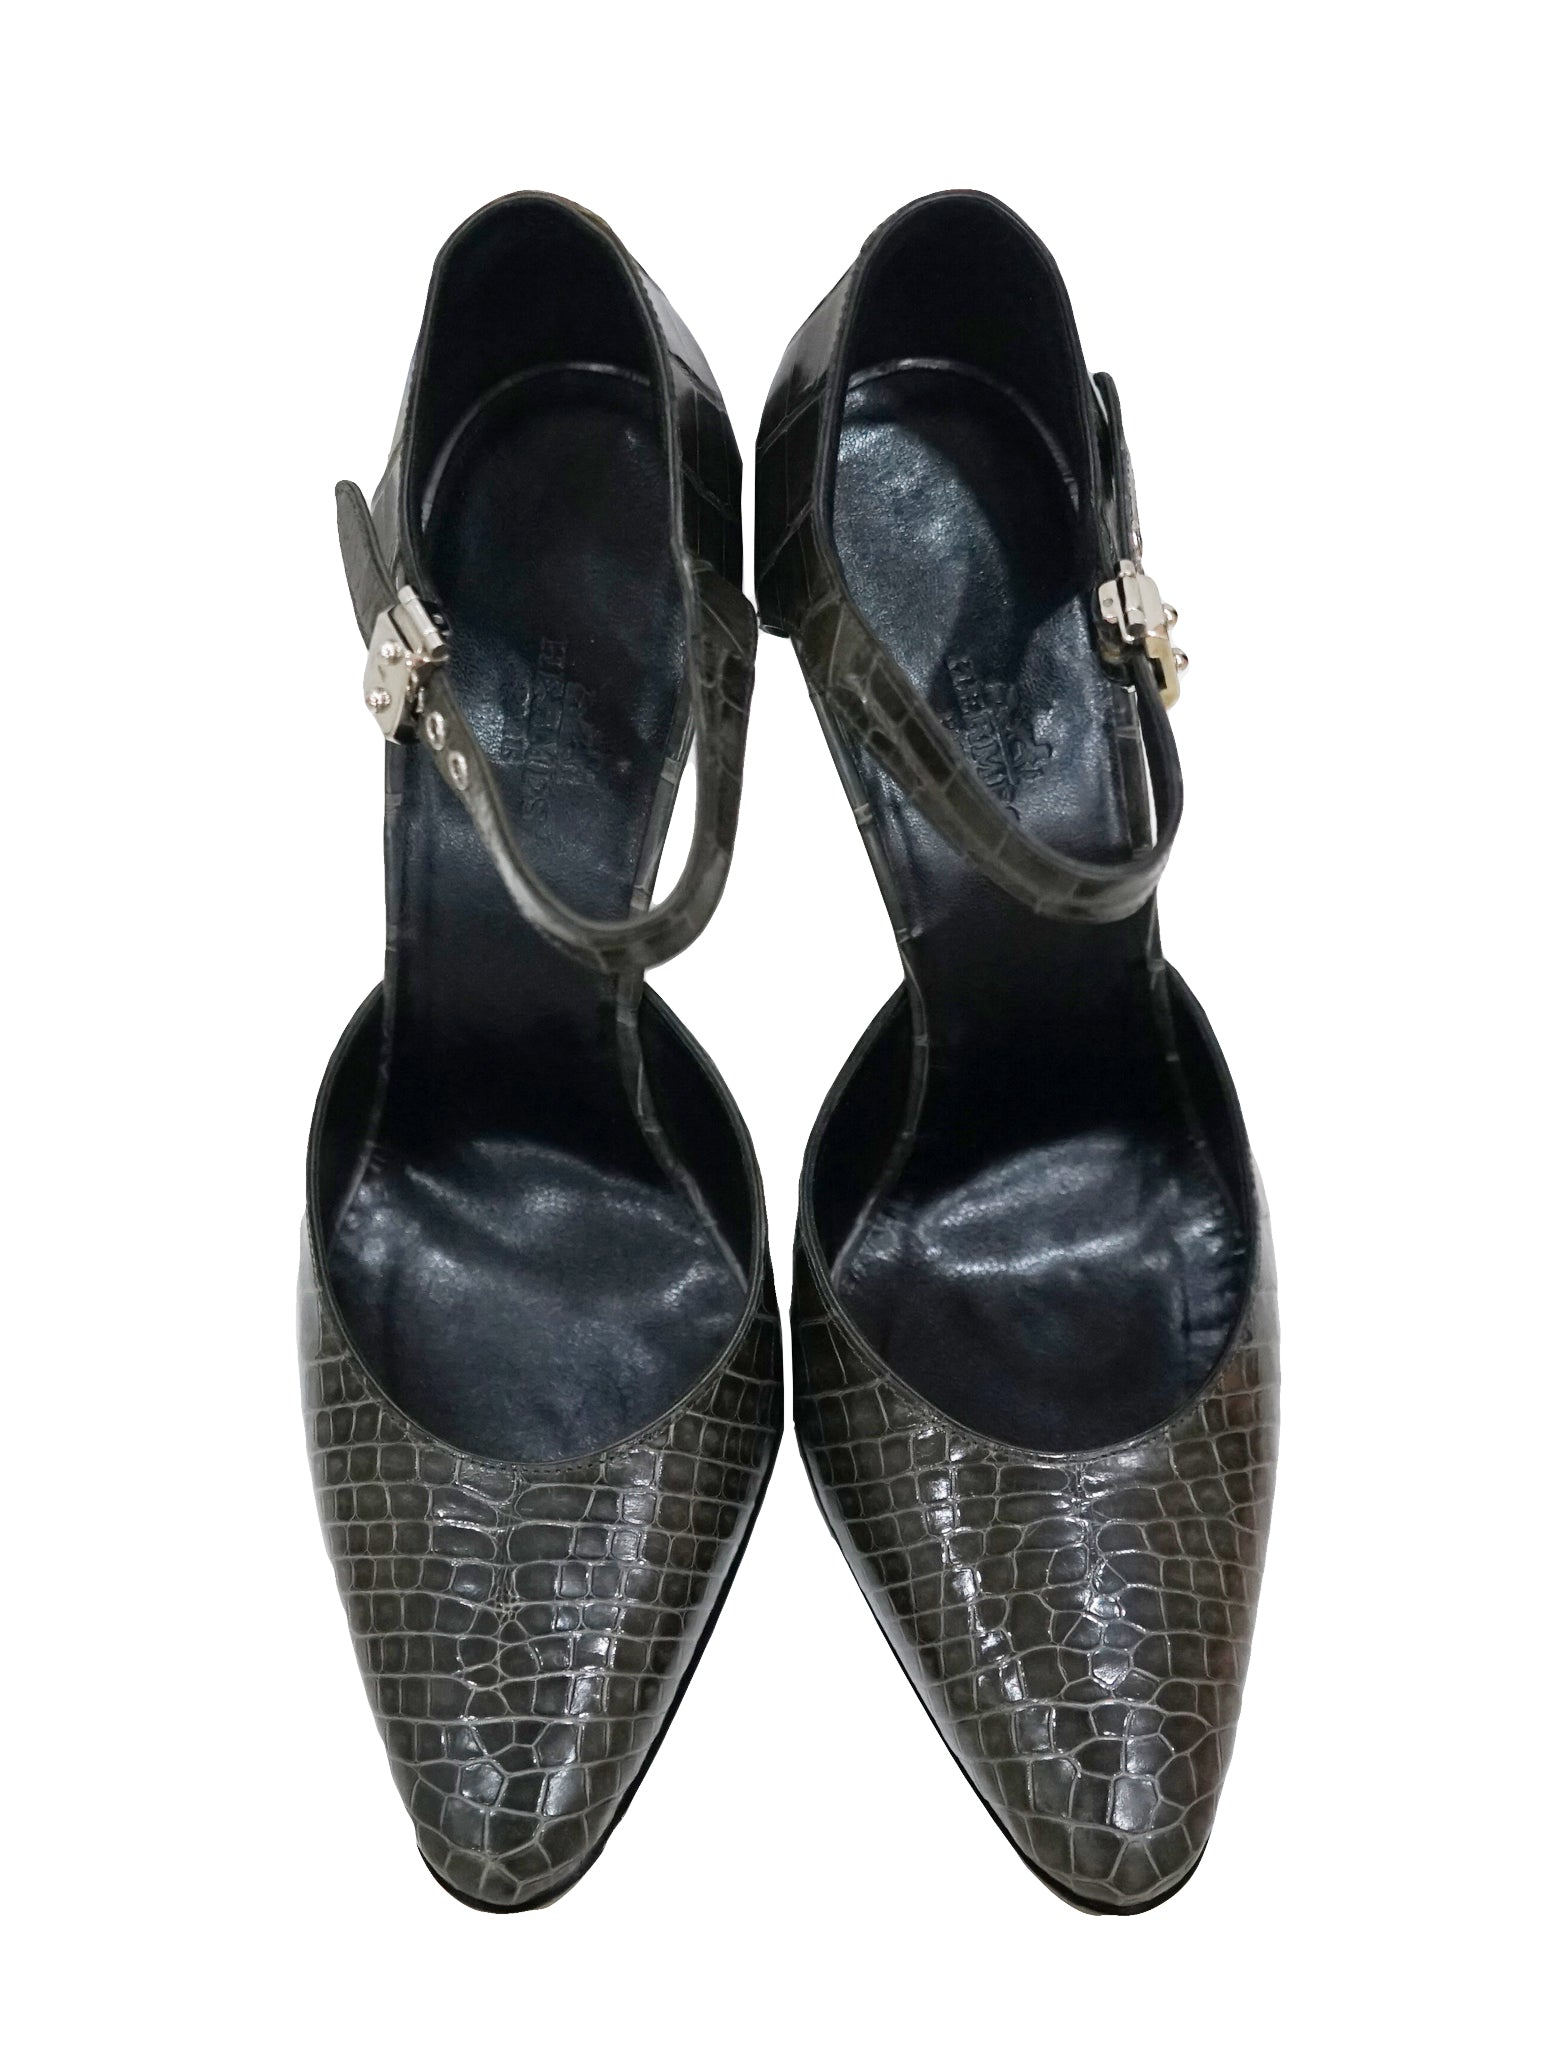 WOMEN'S DARK GRAY CROCODILE HEELS